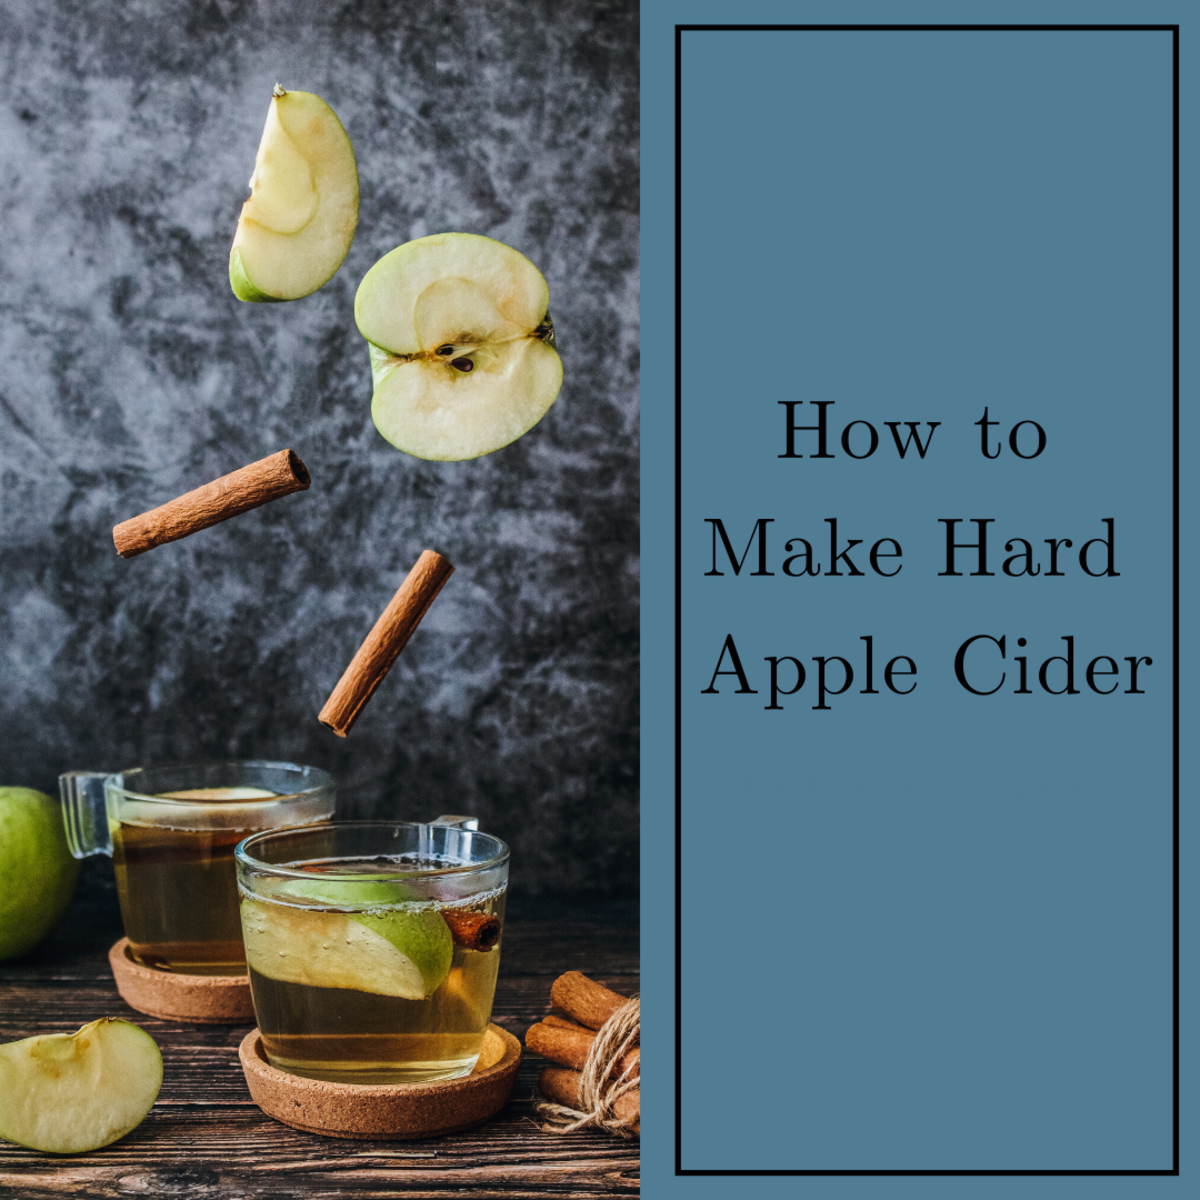 This article provides a simple hard apple cider recipe.